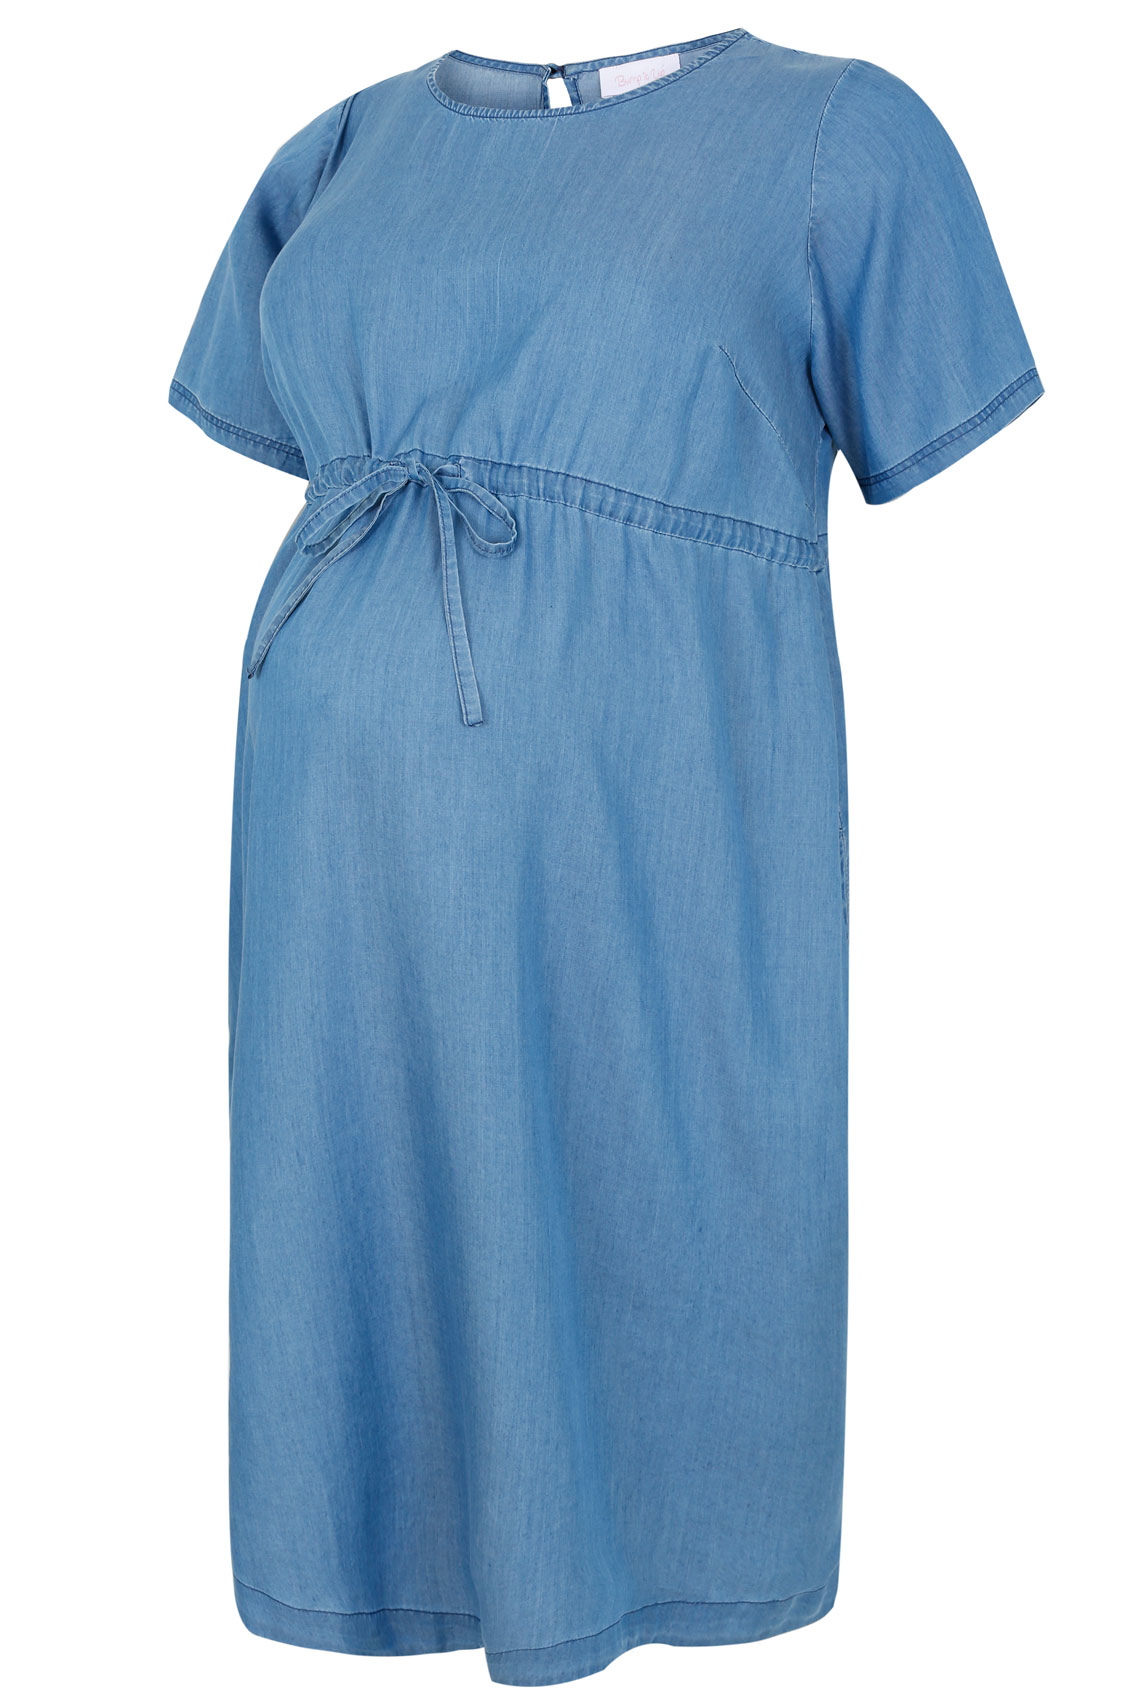 Bump It Up Maternity Light Blue Tie Waist Denim Dress Plus